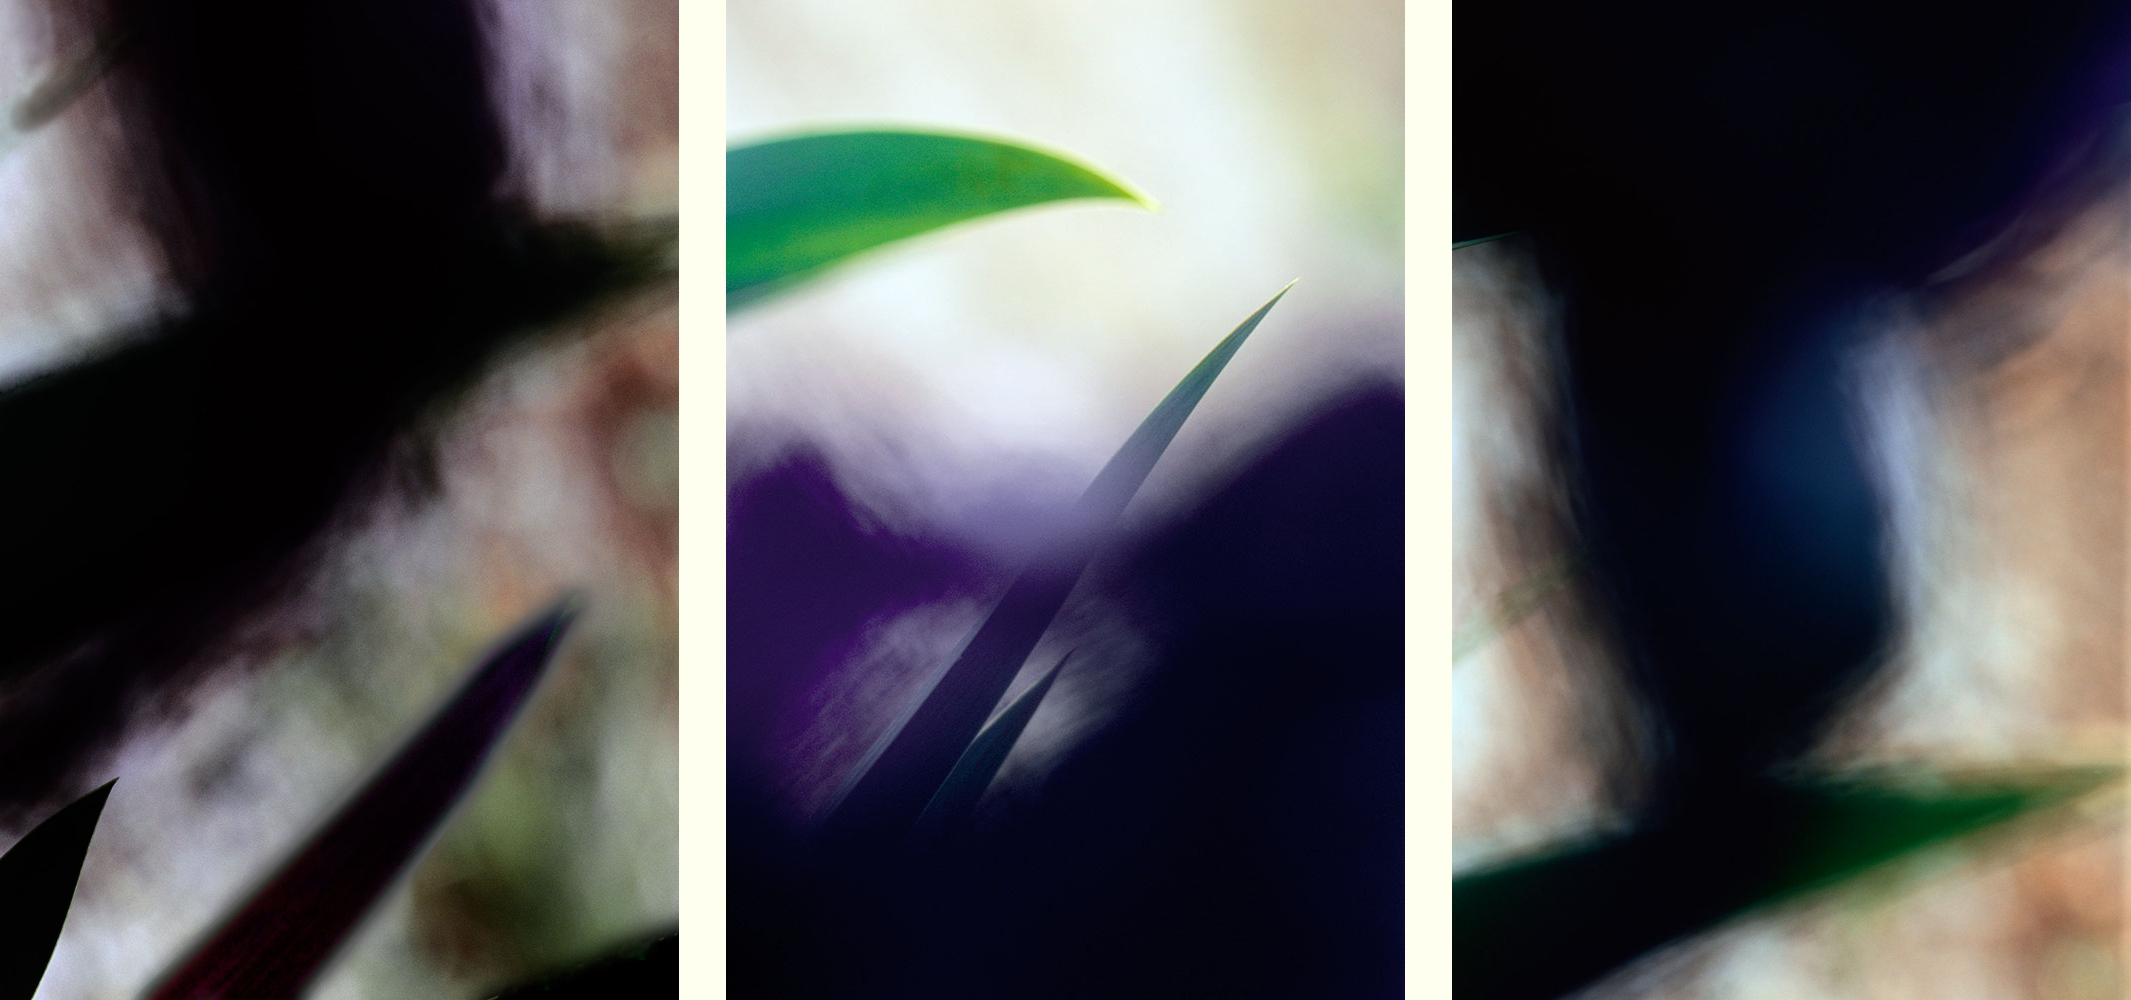 taking-back 1,2,3:       wild    Iris    garden   blades   danger   lance  mystery     lacerating   tonal   texture   intensity     abstract